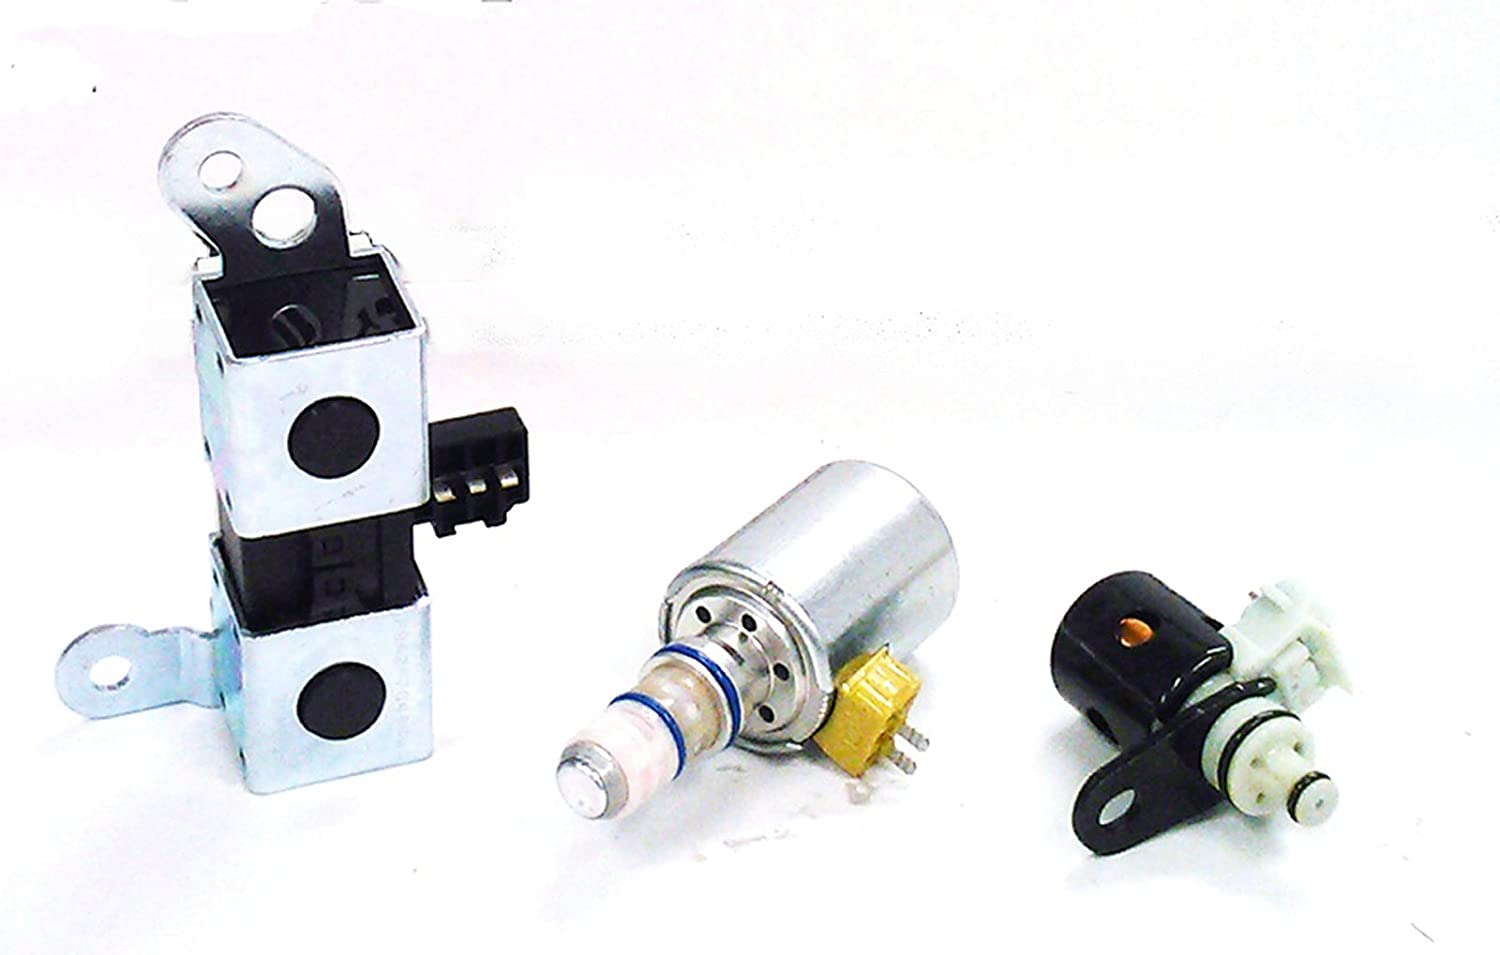 Aode 4r70w Transmission Solenoid Kit 3 Pieces 1998 2004 Wire Harness Ford Aod E Automotive